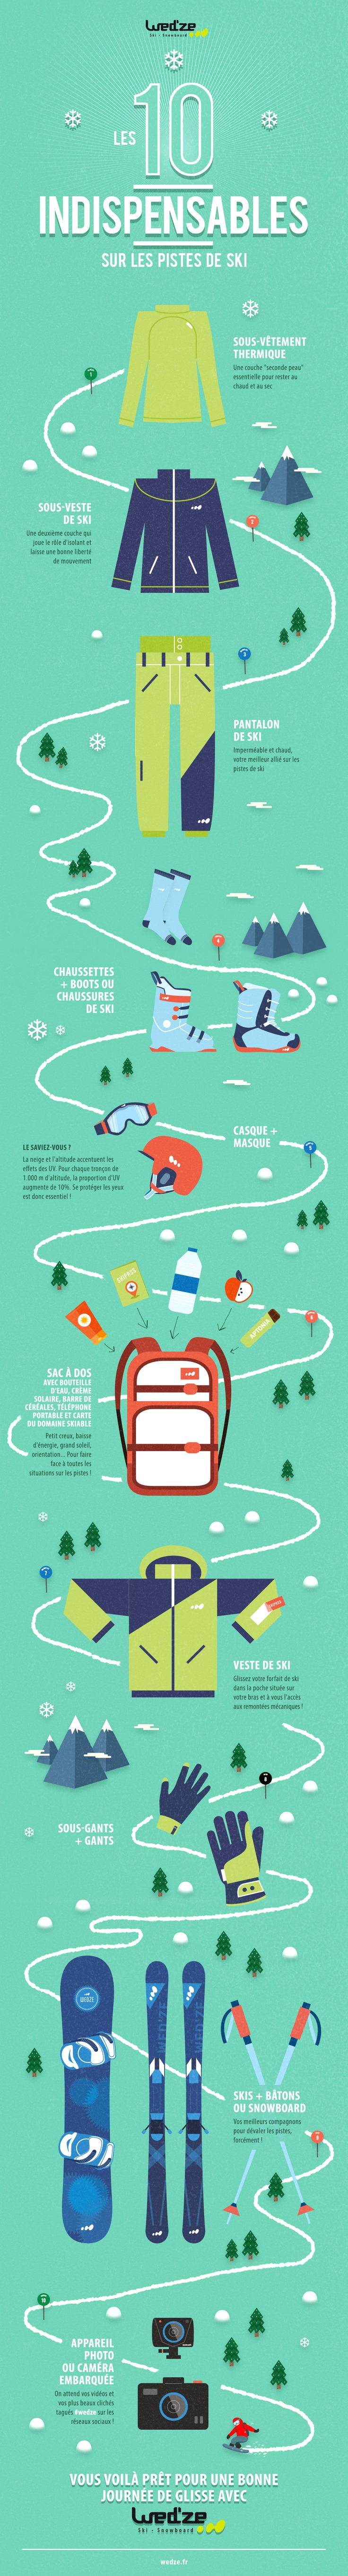 10 indispensables sur les pistes de ski Wedze - creation Virginie Douay - illustration Wedze